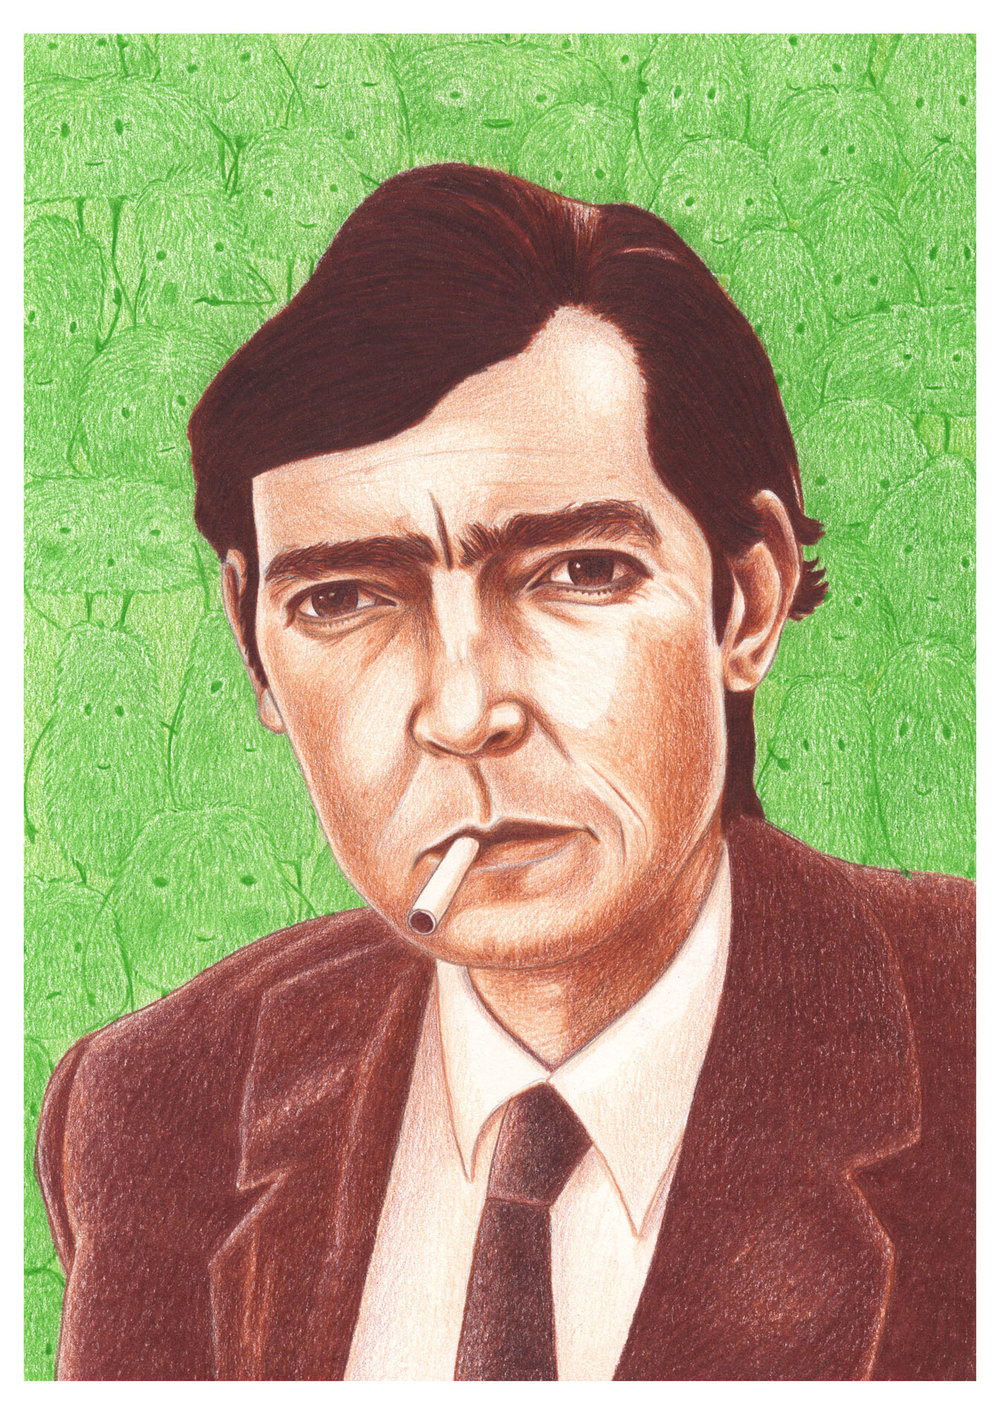 And finally, my illustration of Julio Cortazar, with the little Cronopio's in the background.